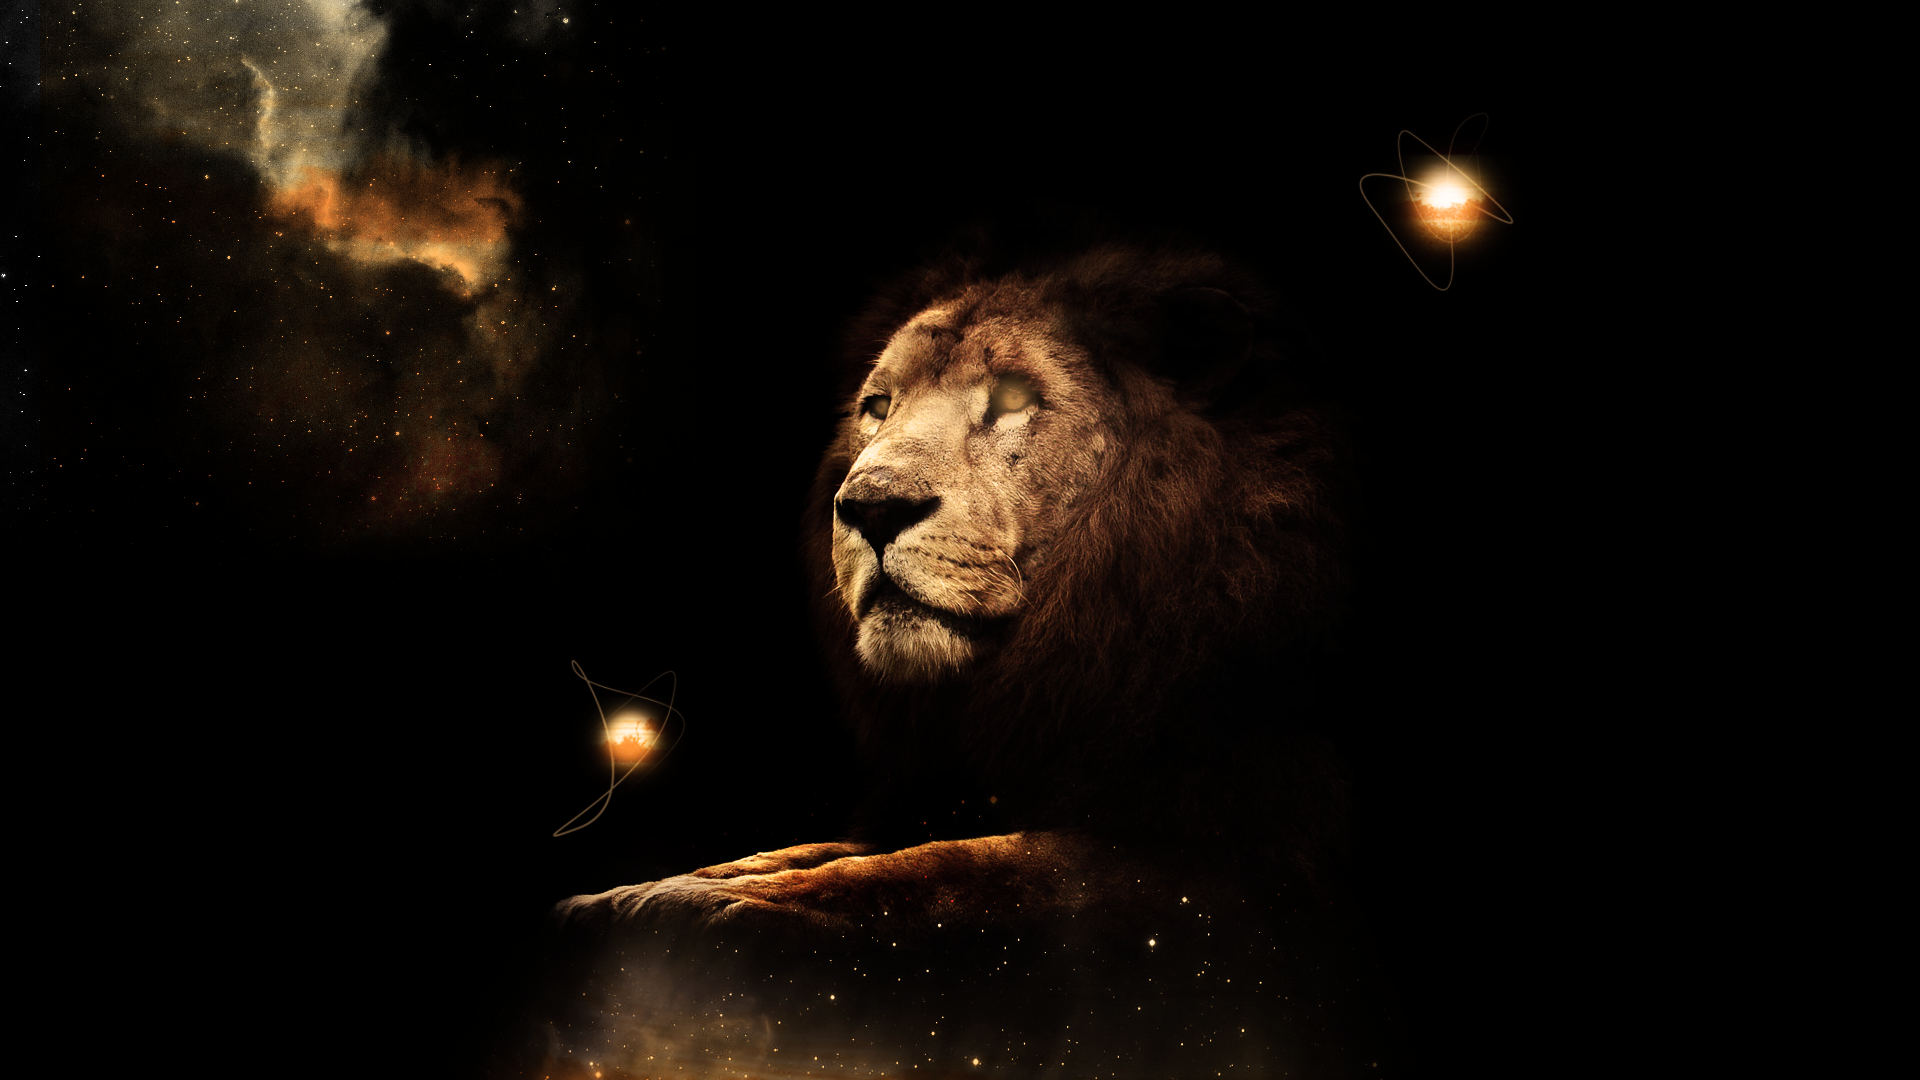 Lion Wallpaper HD by Tooyp 1920x1080